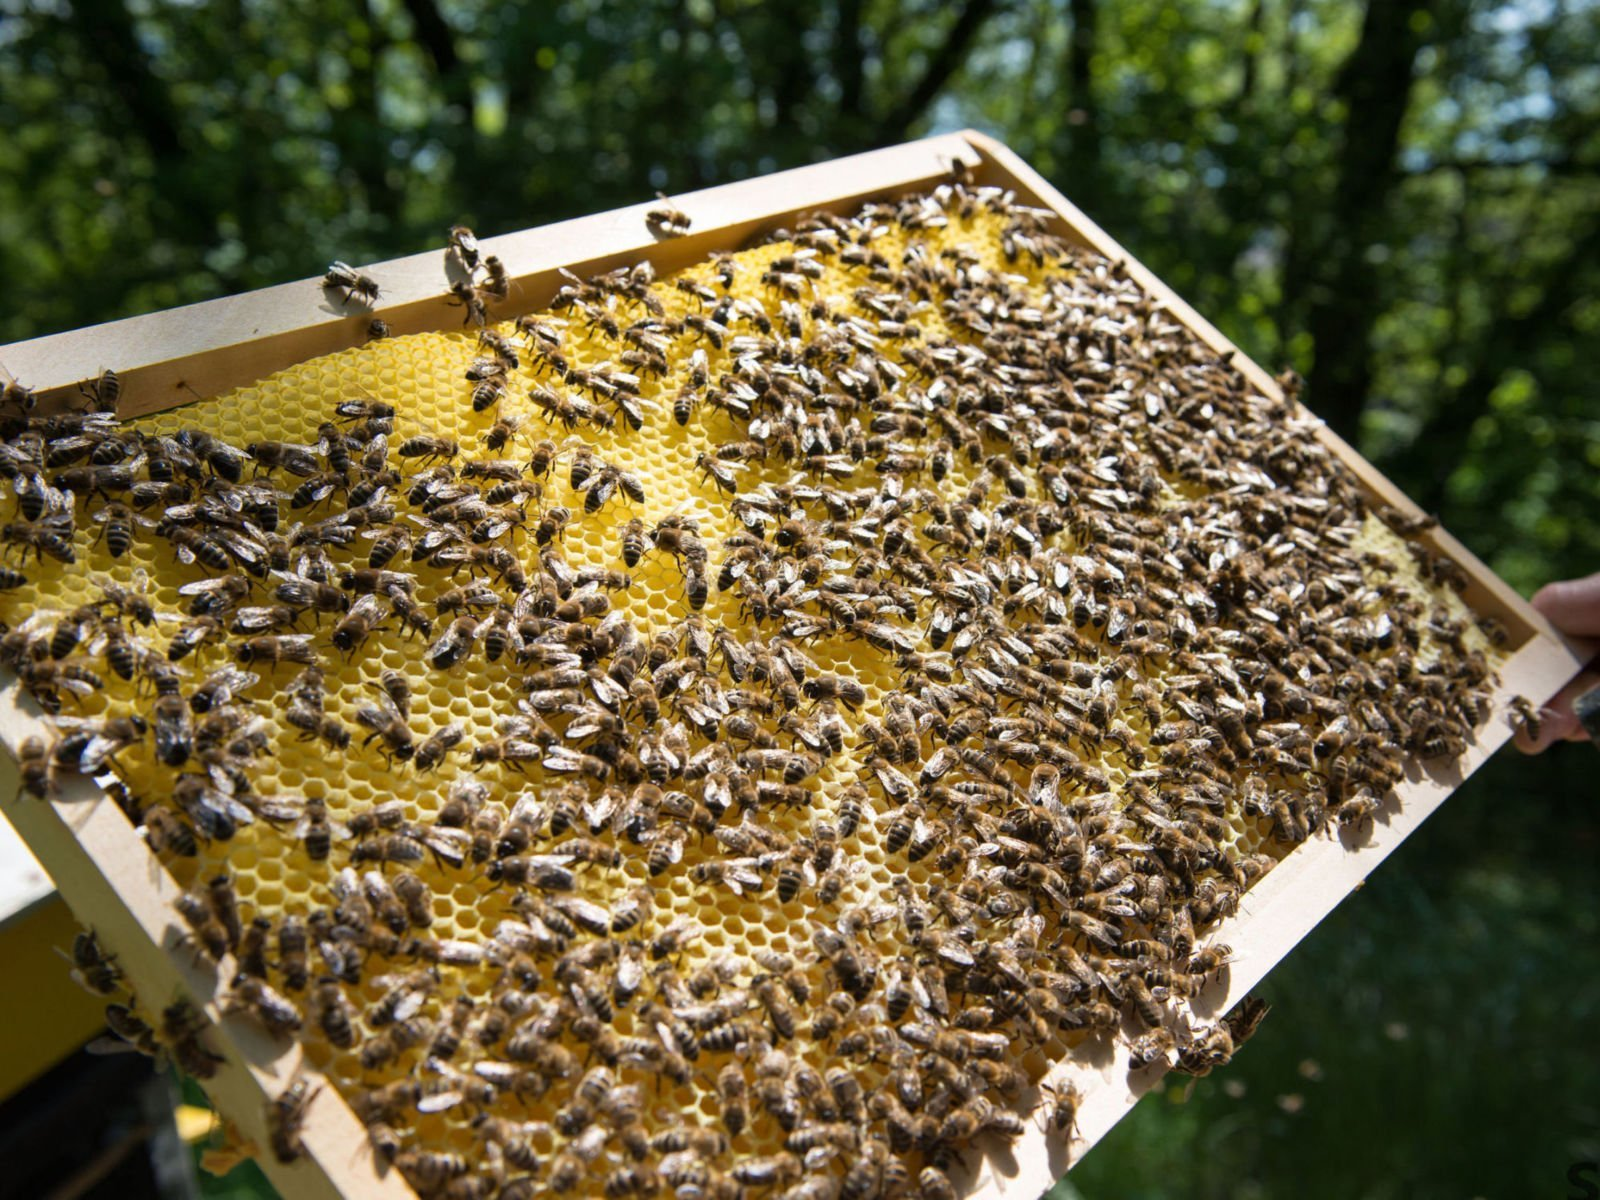 honey bees on a hive panel